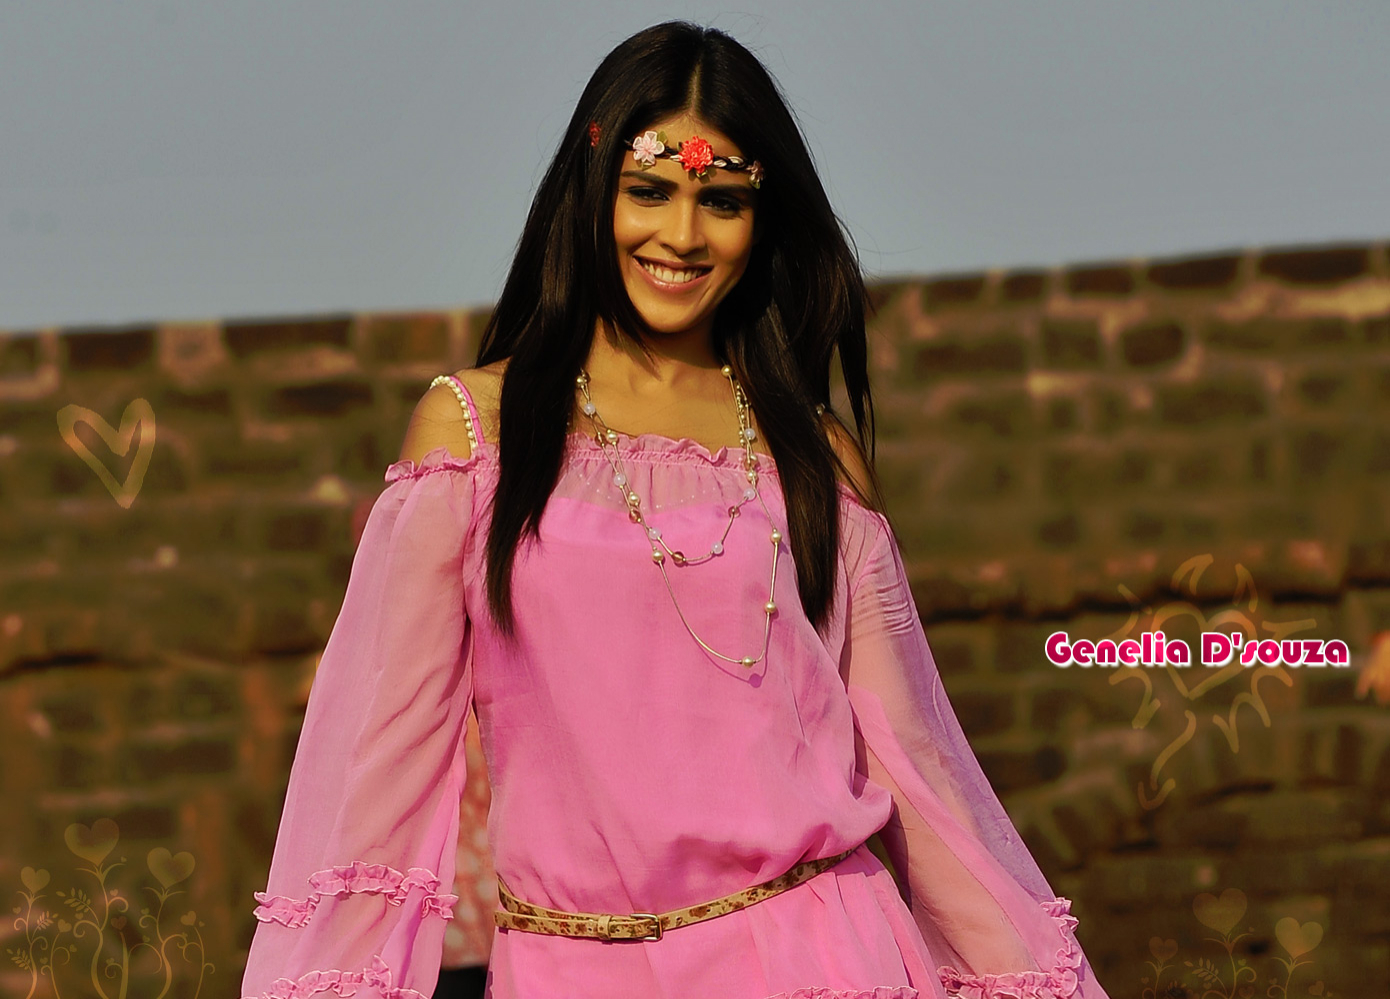 genelia d'souza wallpapers | high quality wallpapers of actress